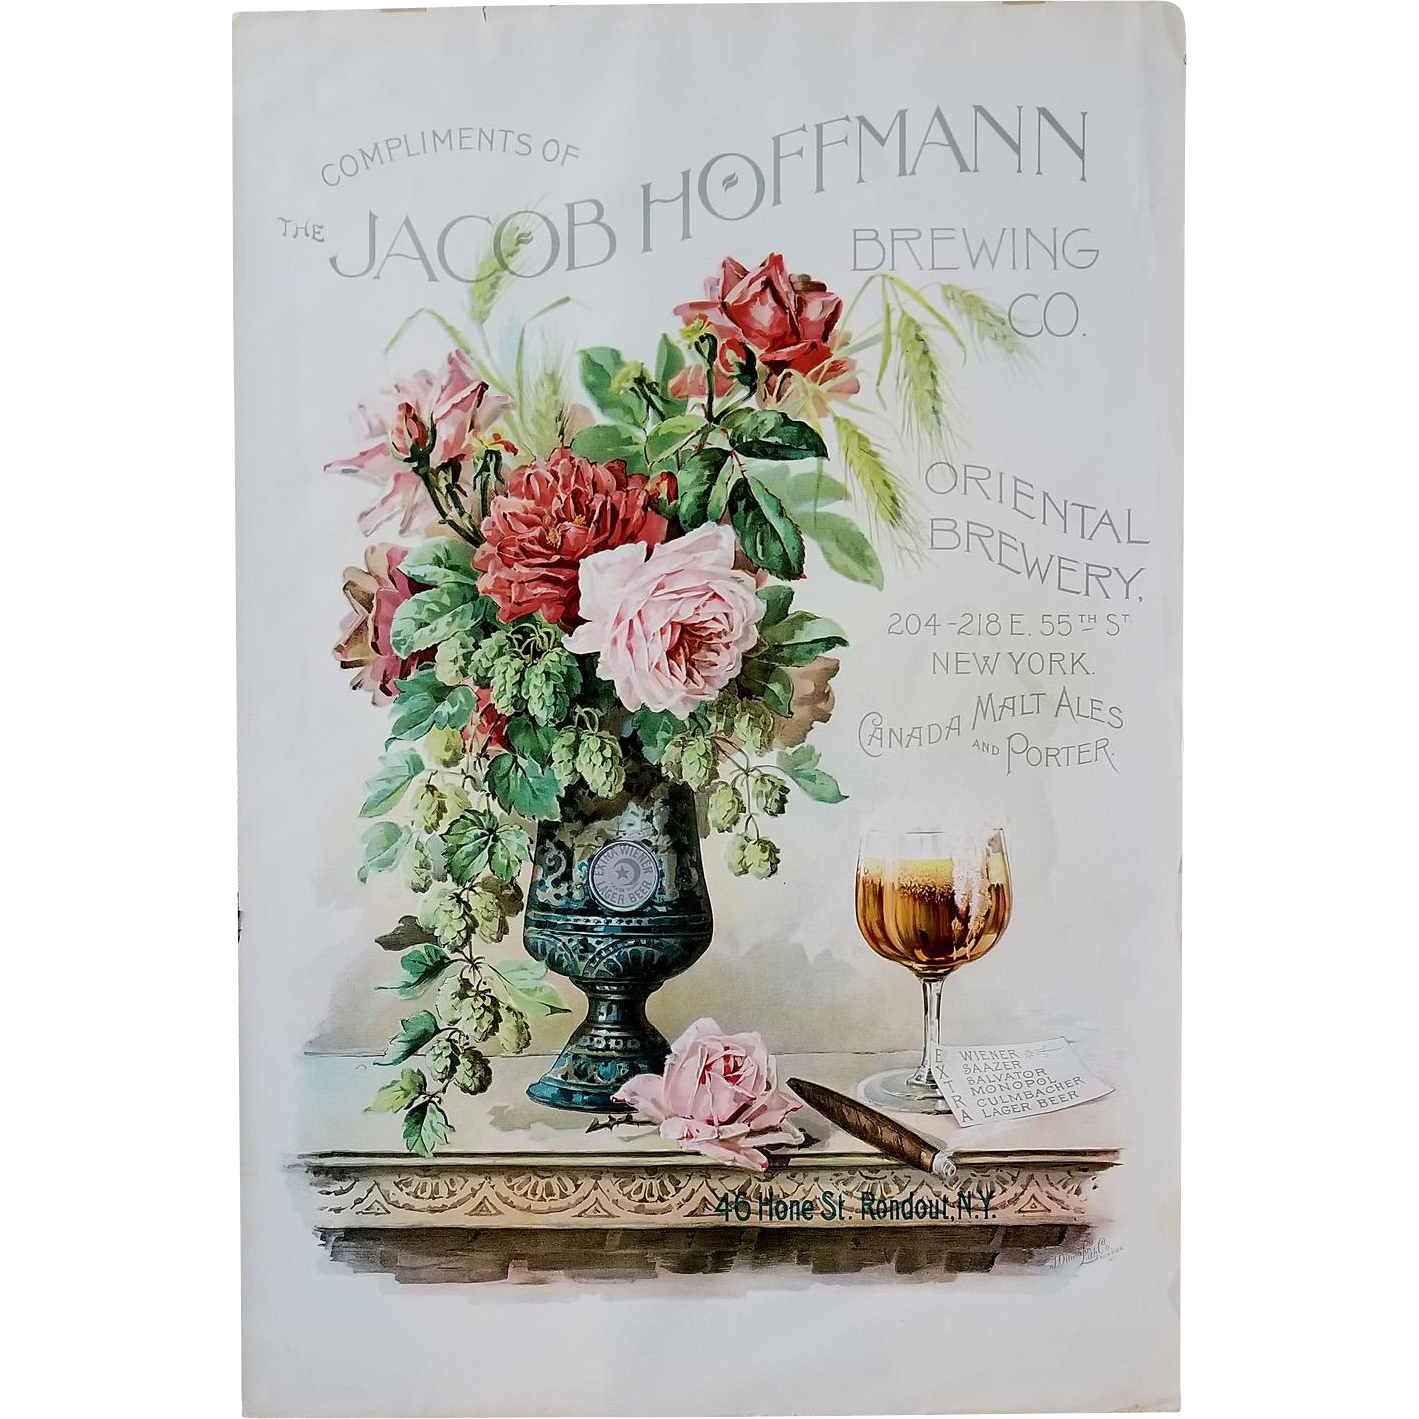 Roses Beer Cigar Prohibition Tobacco Print Paul de Longpre c1890 Large Chromolithograph Roses Jacob Hoffmann Brewing Company